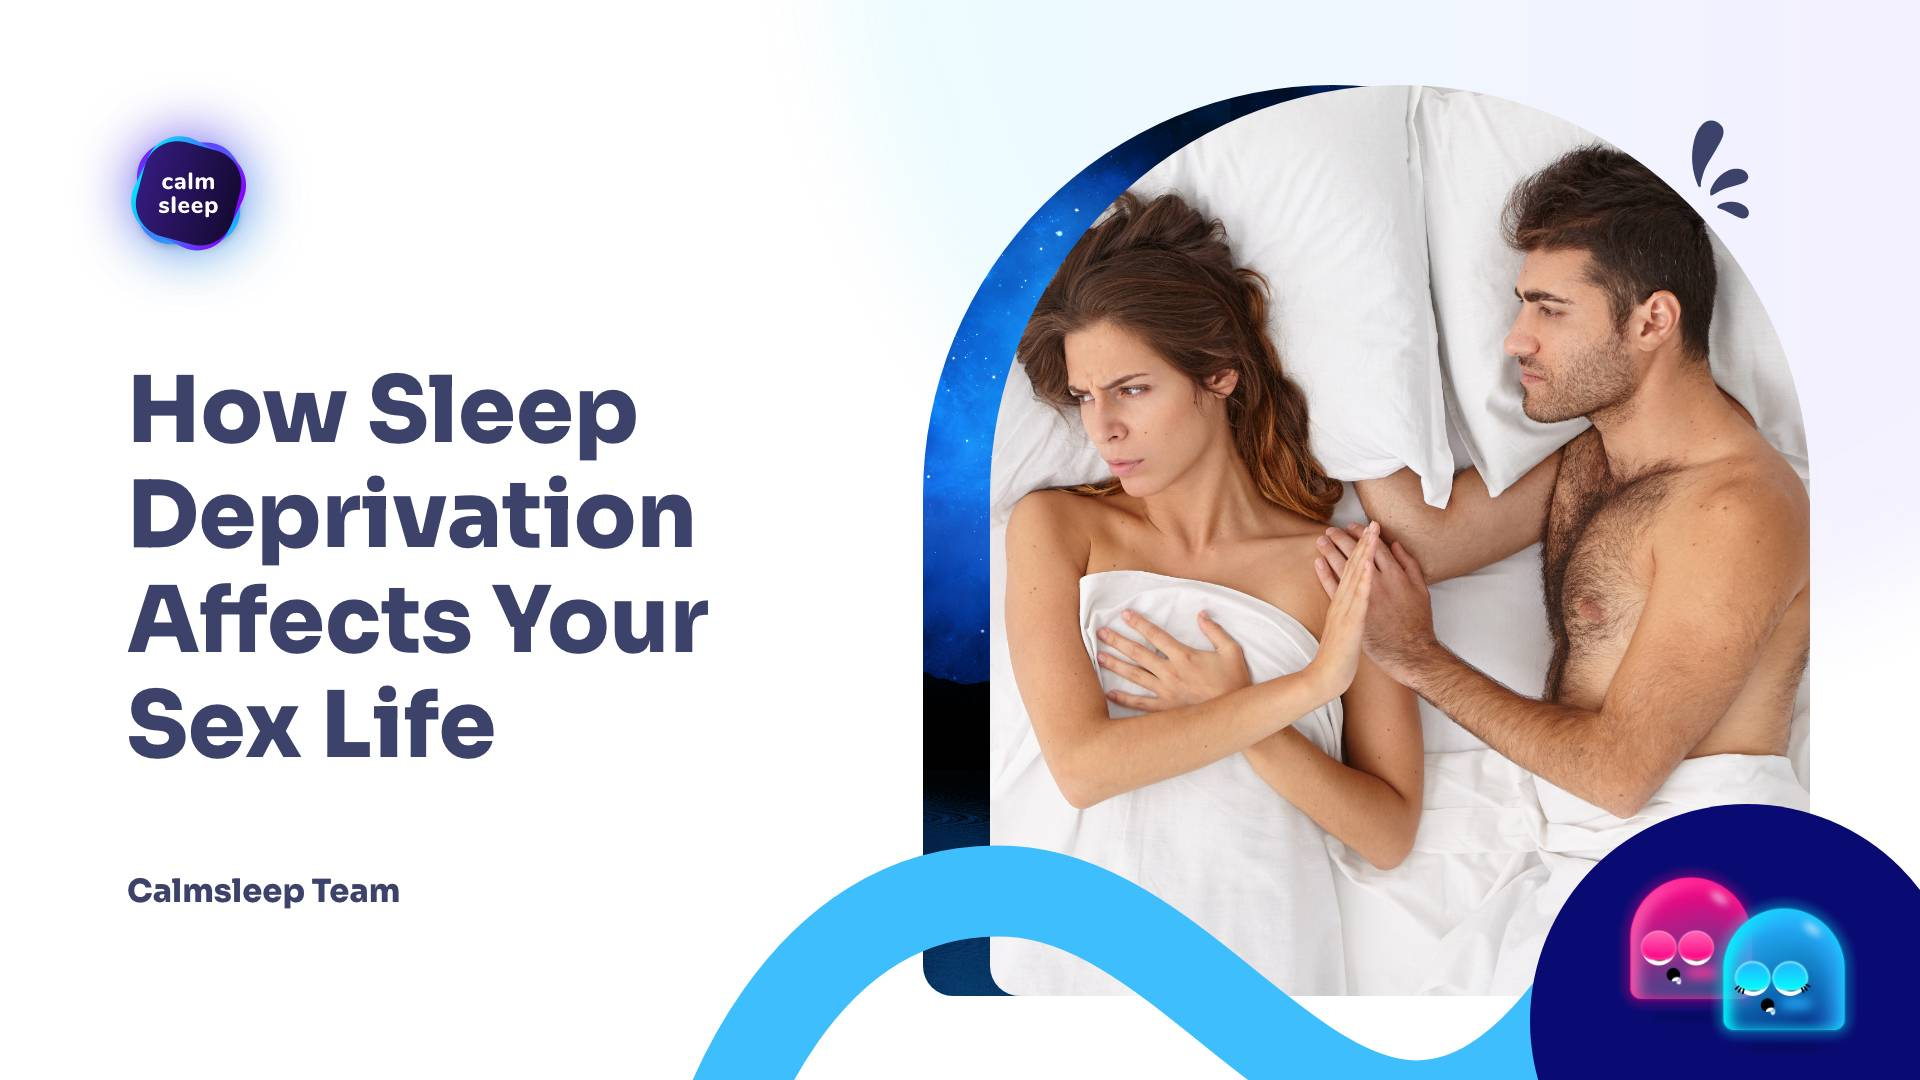 How Sleep Deprivation Affects Your Sex Life